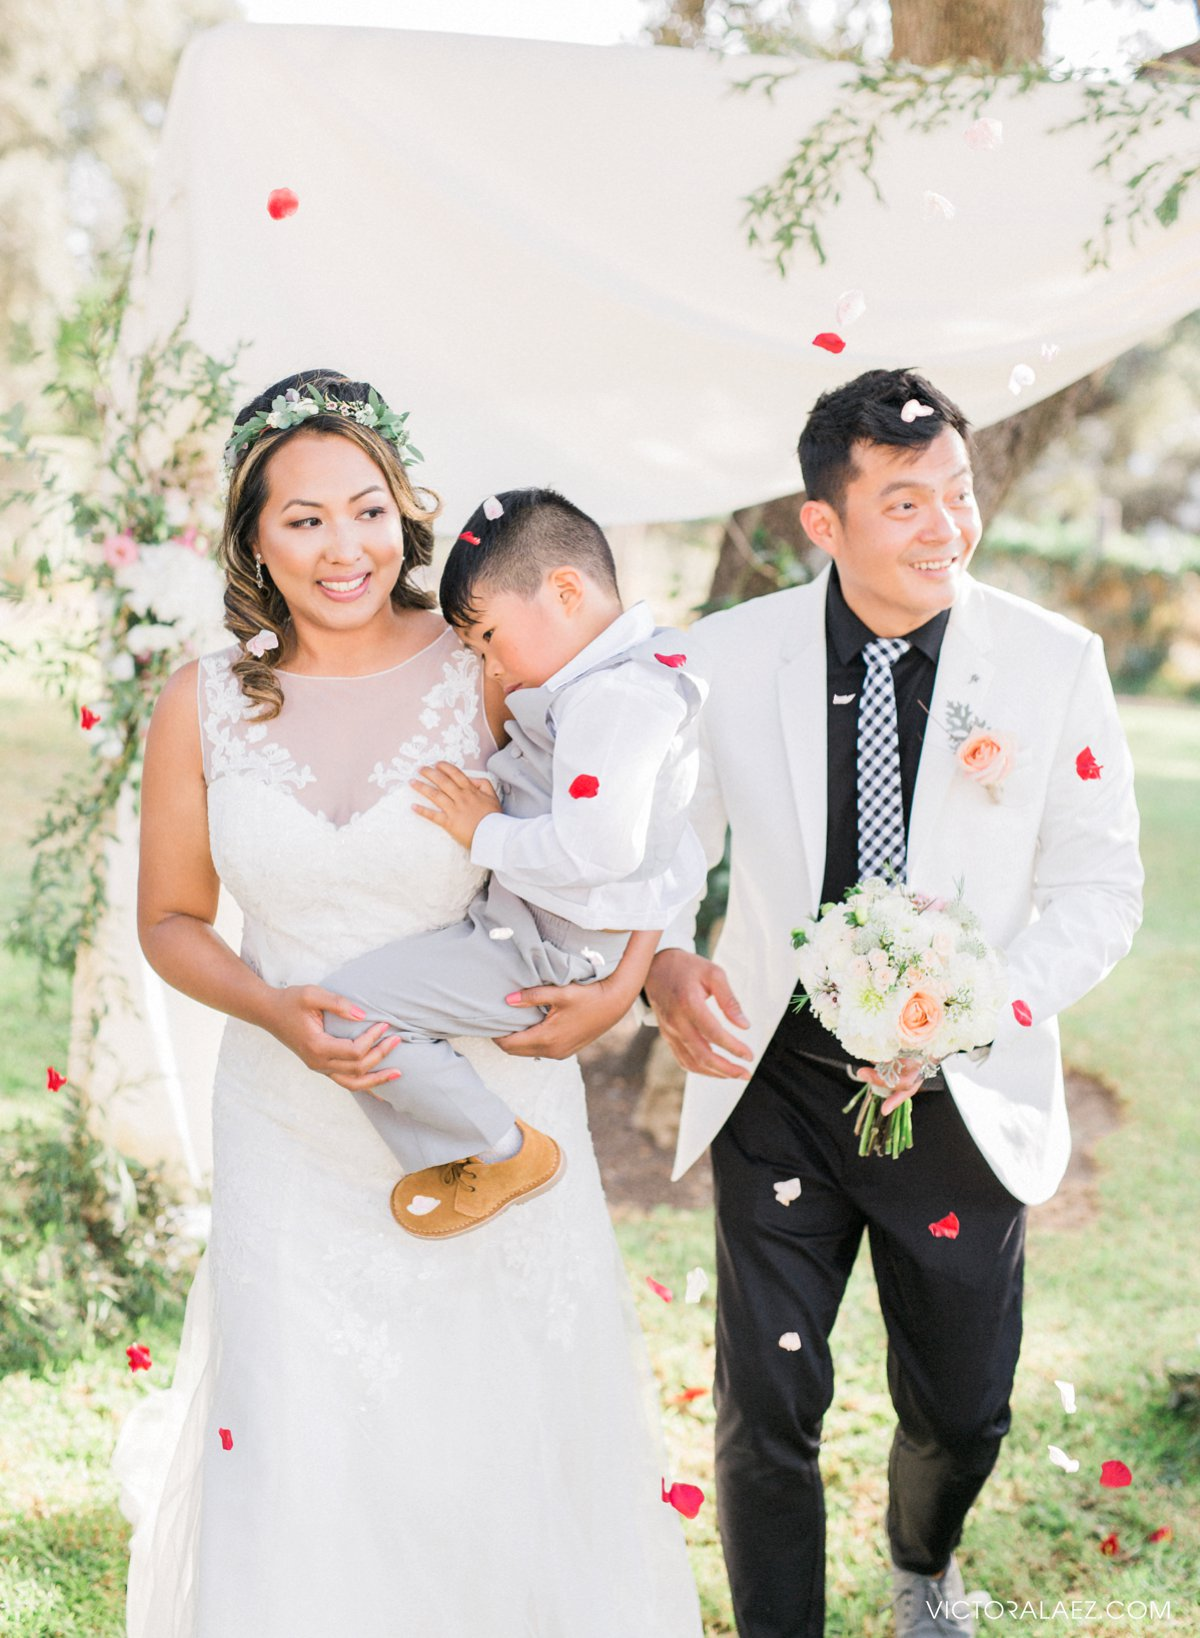 Bride and Groom Recessional with Kid in Destination Wedding